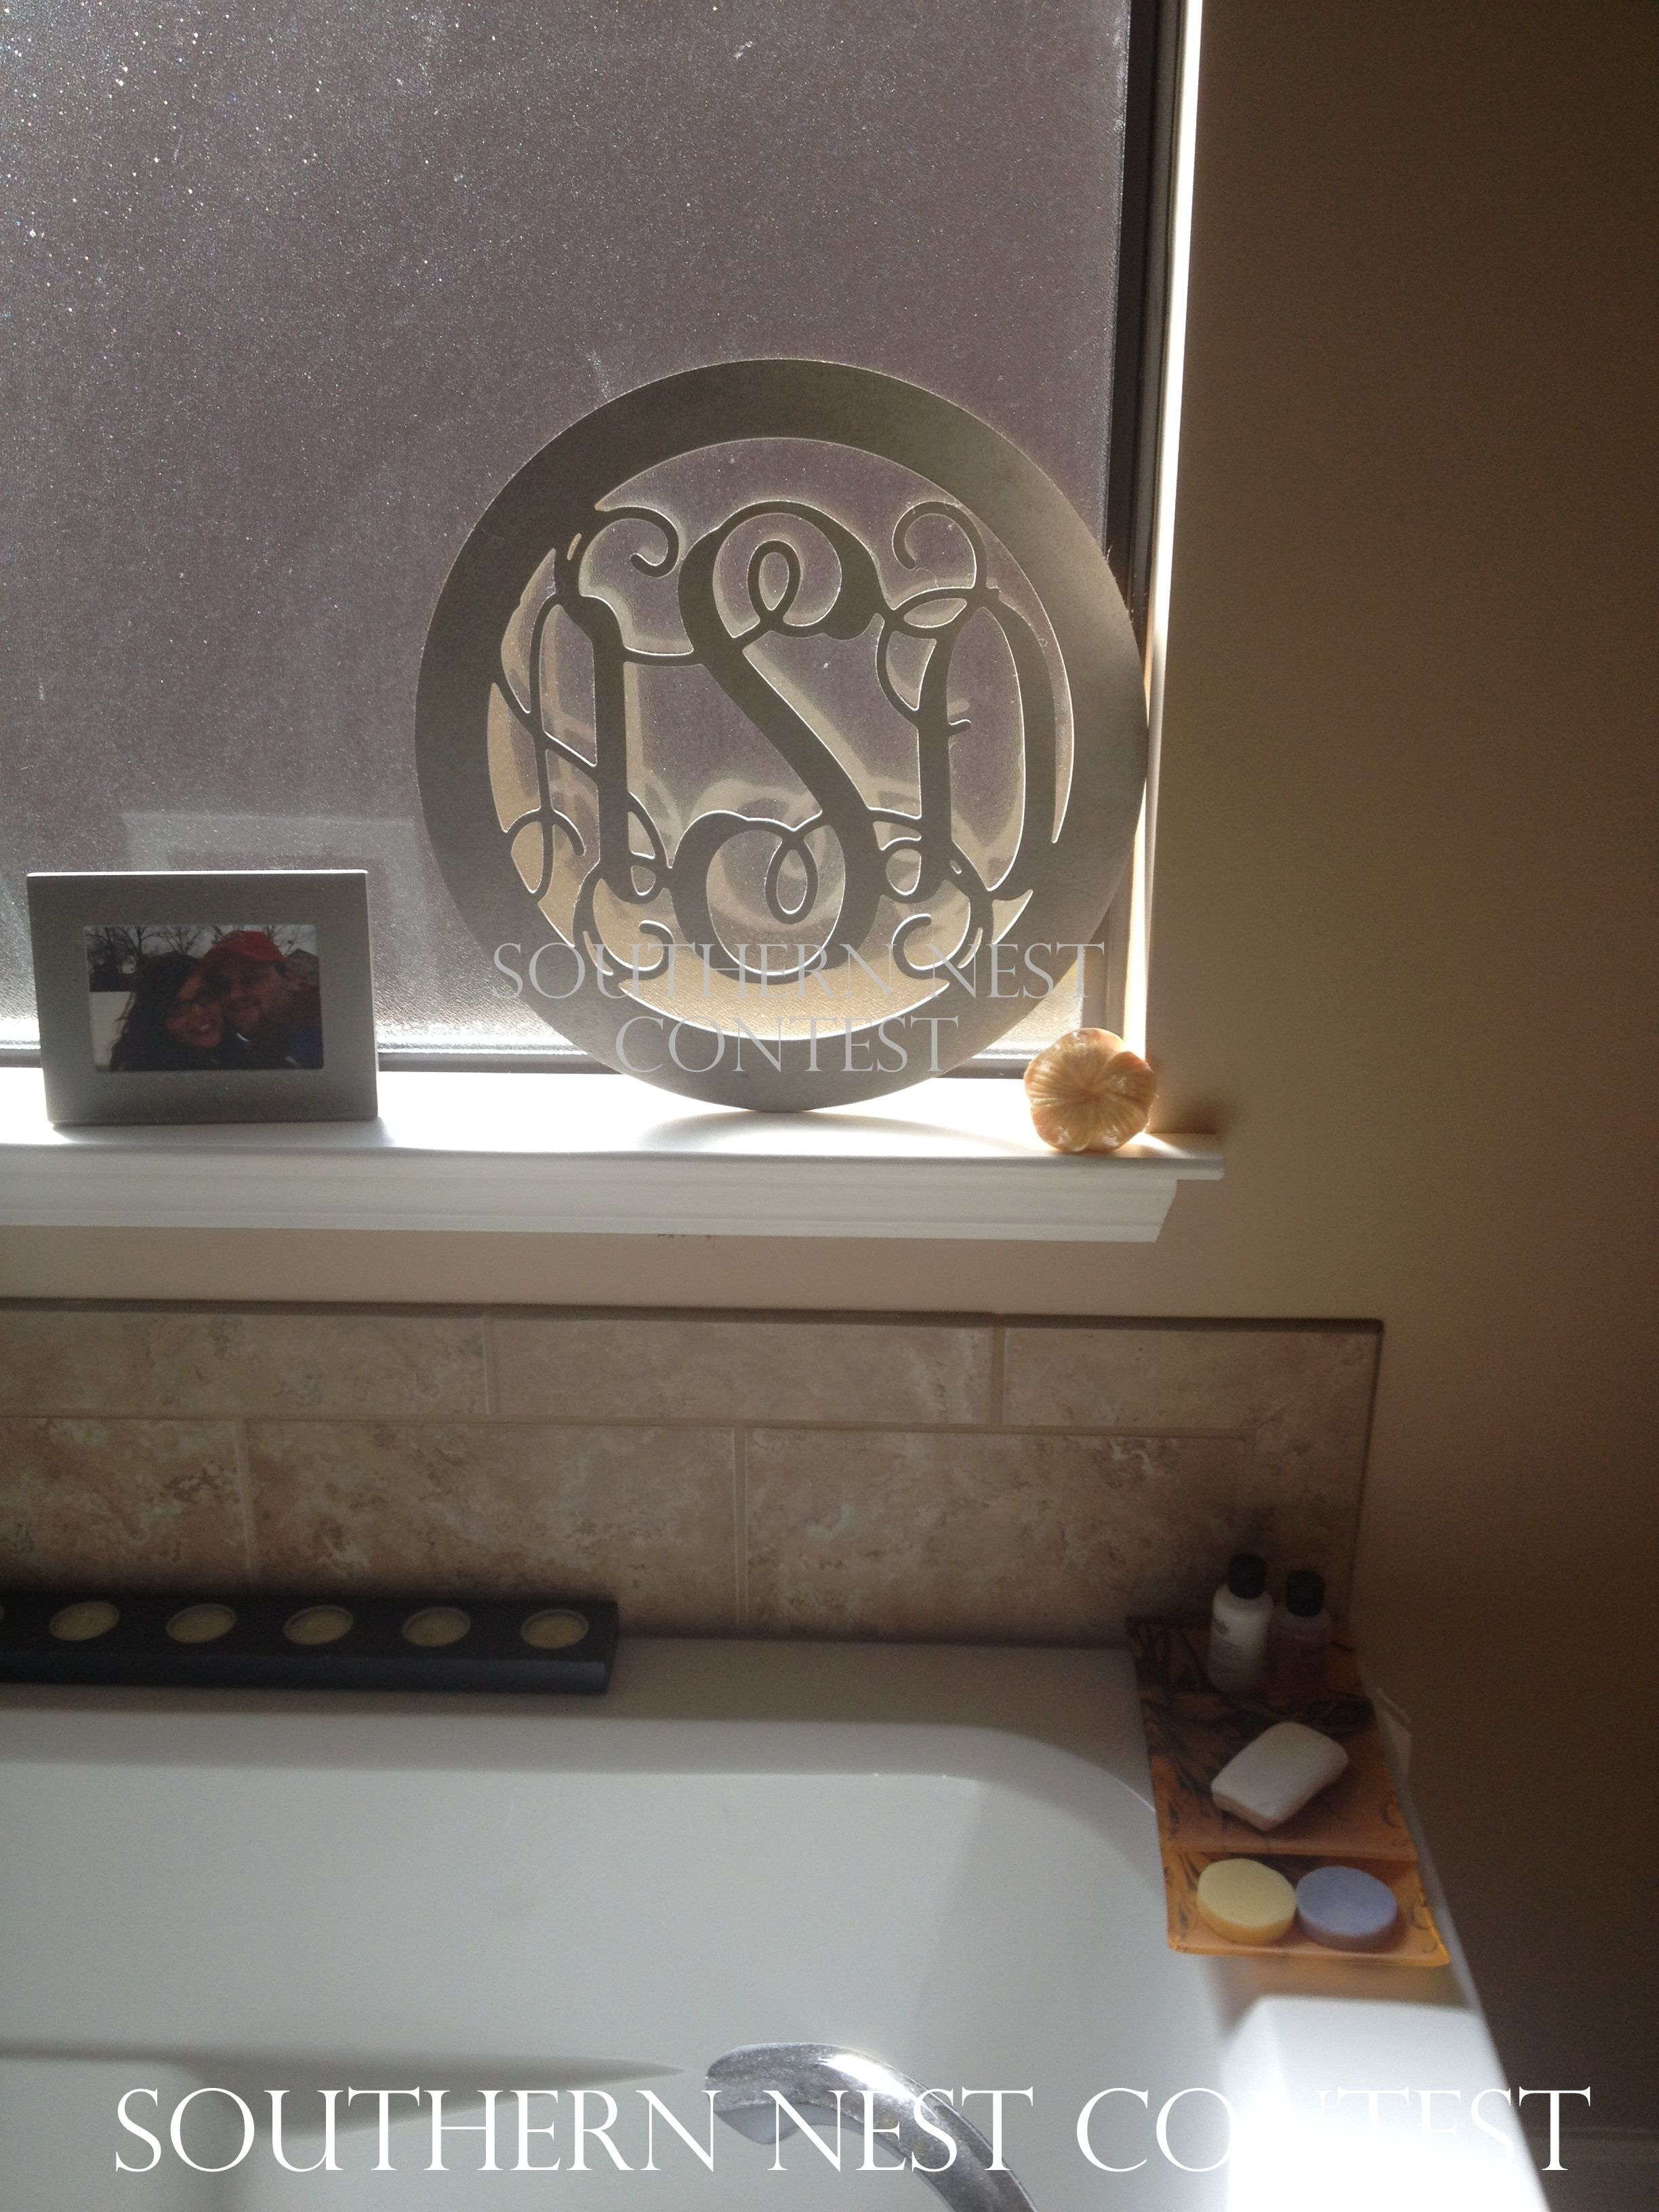 """I placed my large (18"") wooden circle monogram on the ledge of my window above my bathtub. I pained it silver to match my bathroom colors. It looks so pretty when the light shines in!"" -Abby"